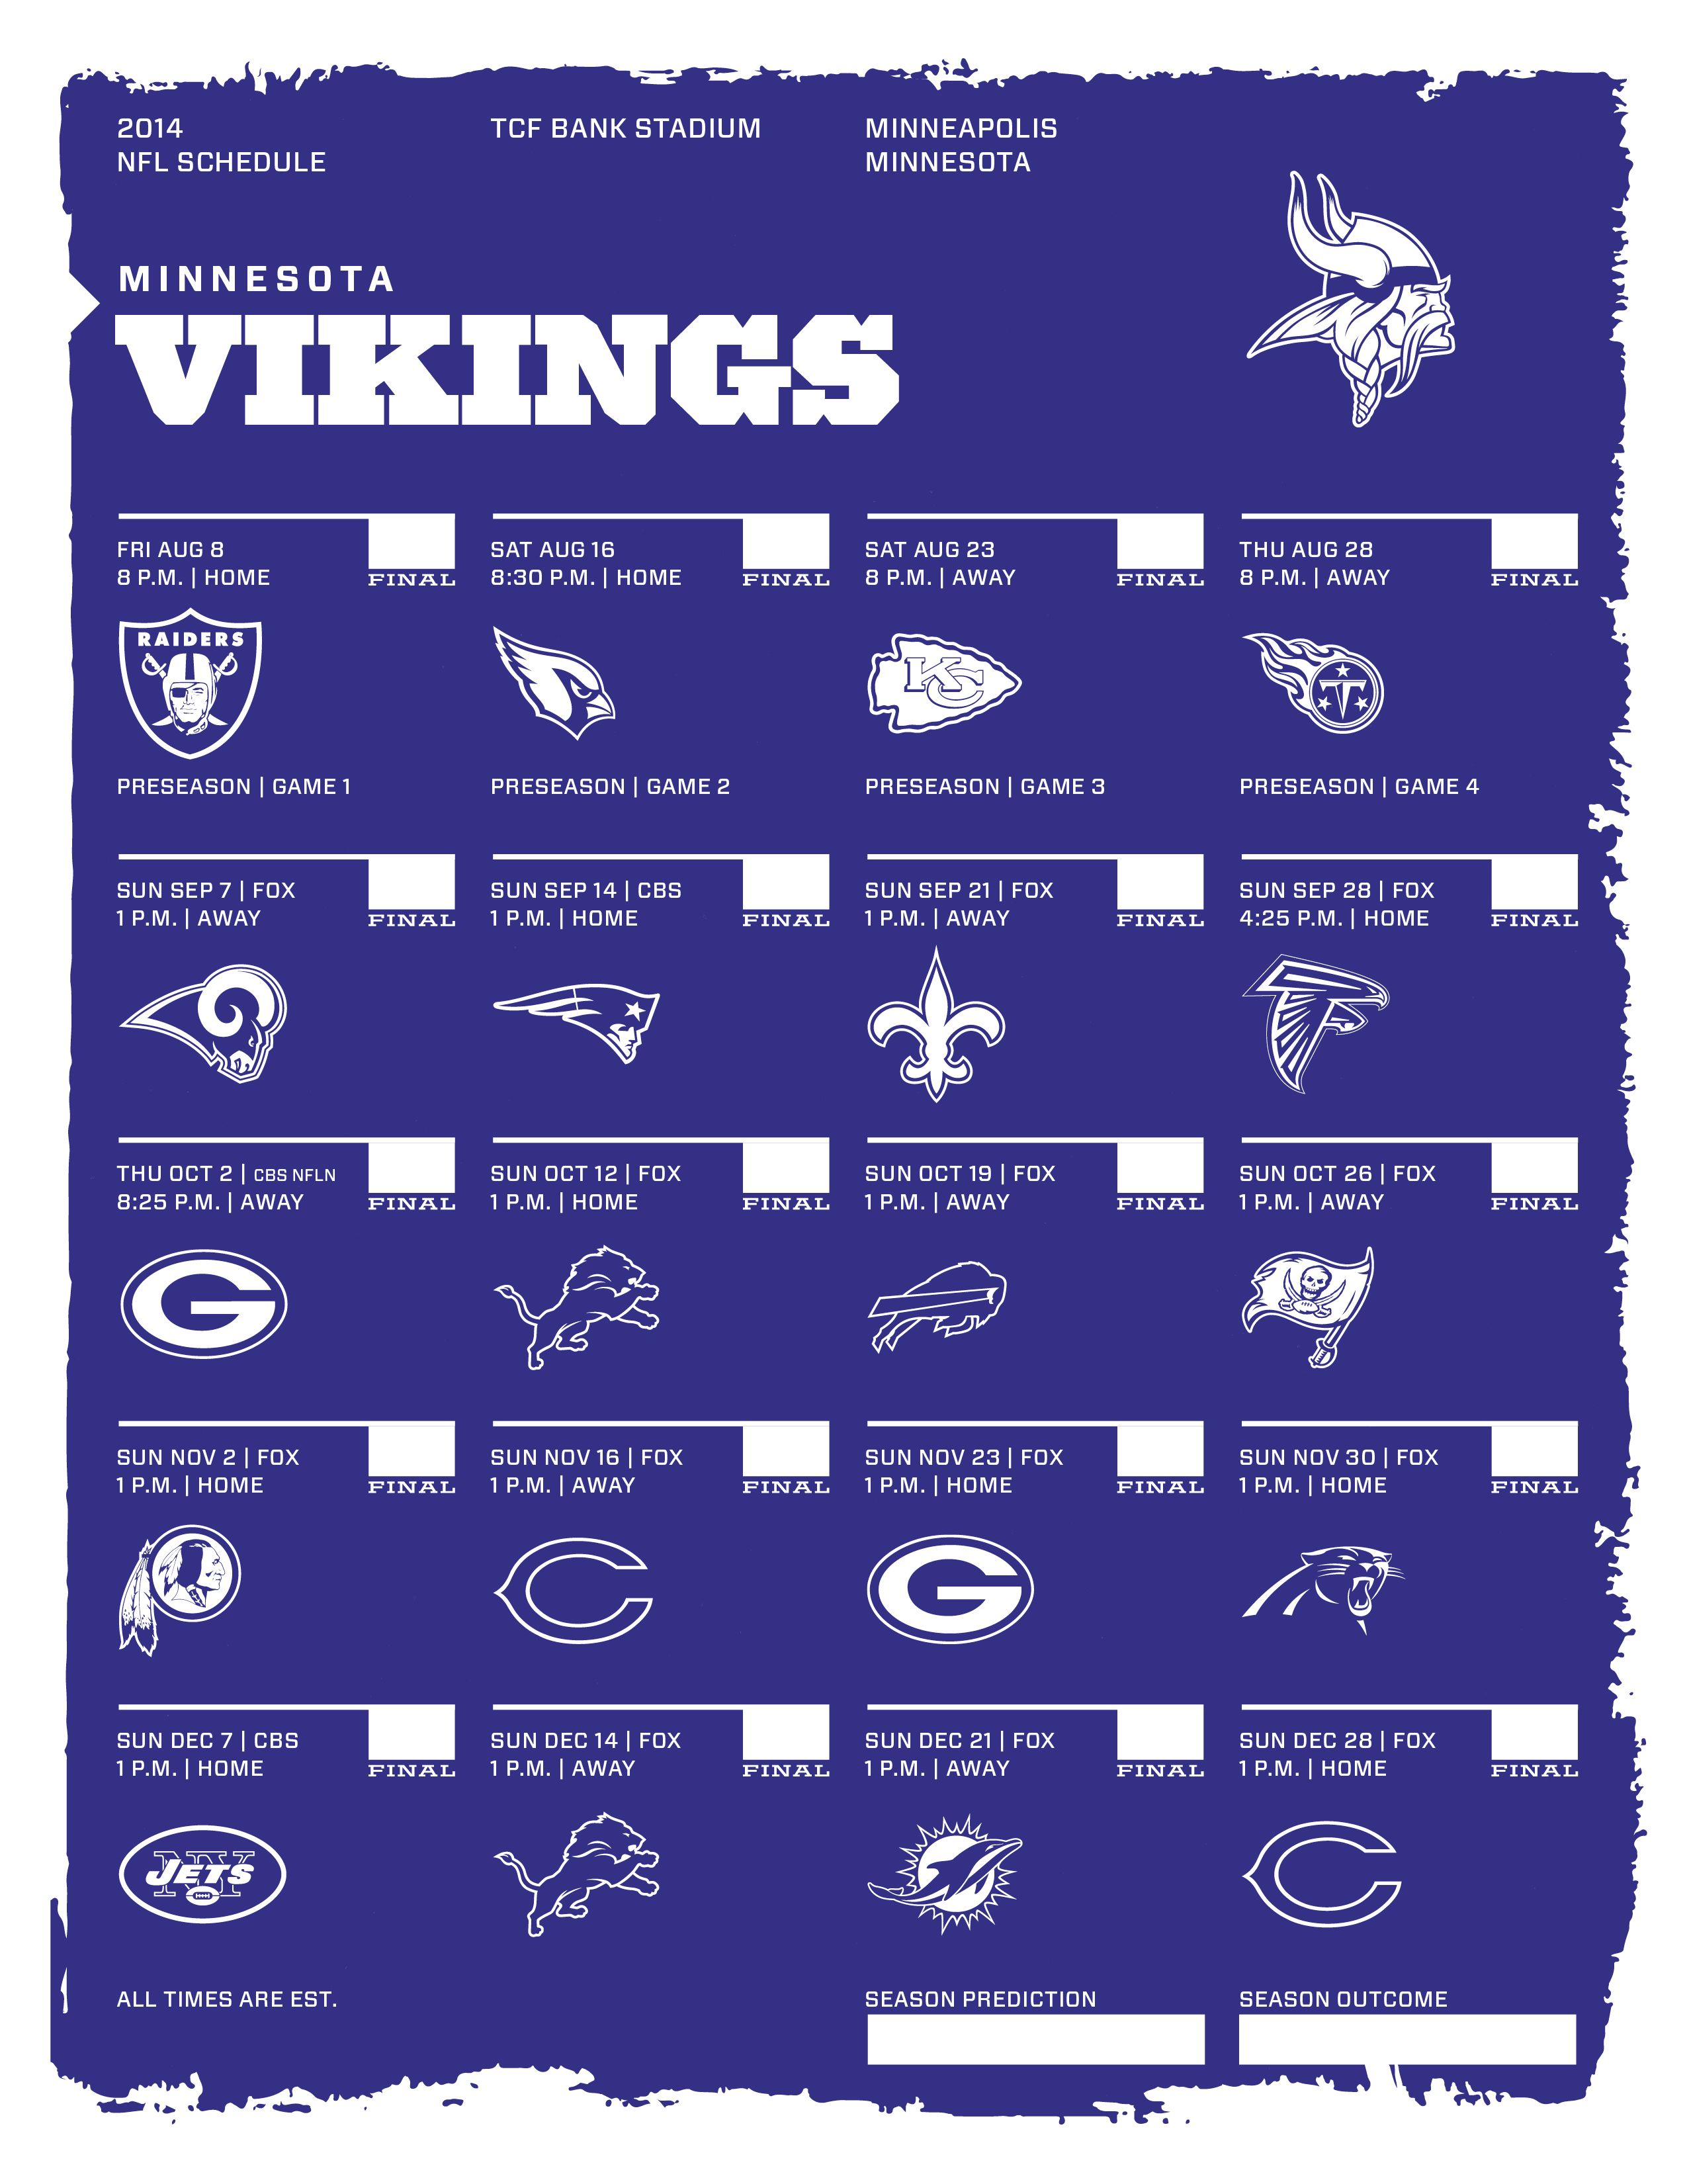 Minnesota Vikings 2014 Schedule Printable | Search Results | Calendar ...